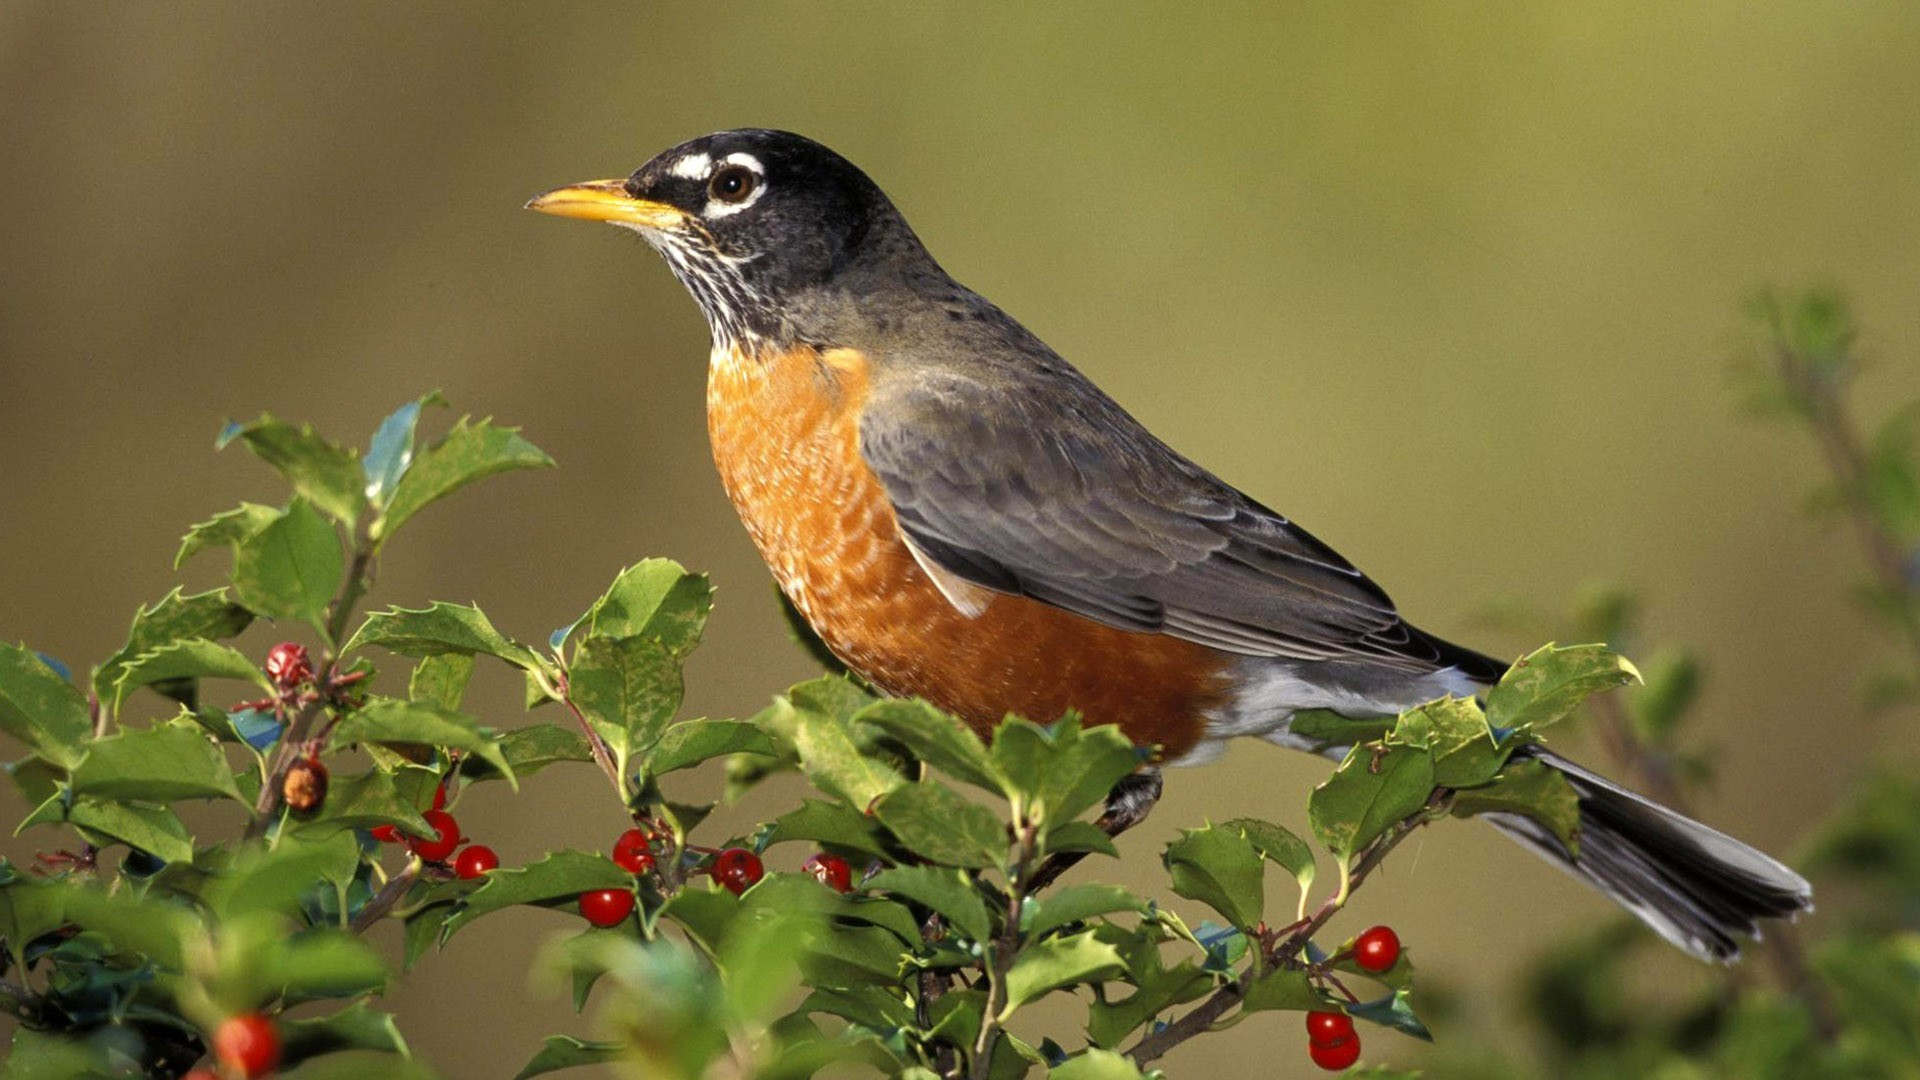 14 American Robin Birds Hd Wallpapers Top Images Free Download 155 American Robin Birds Hd Wallpapers